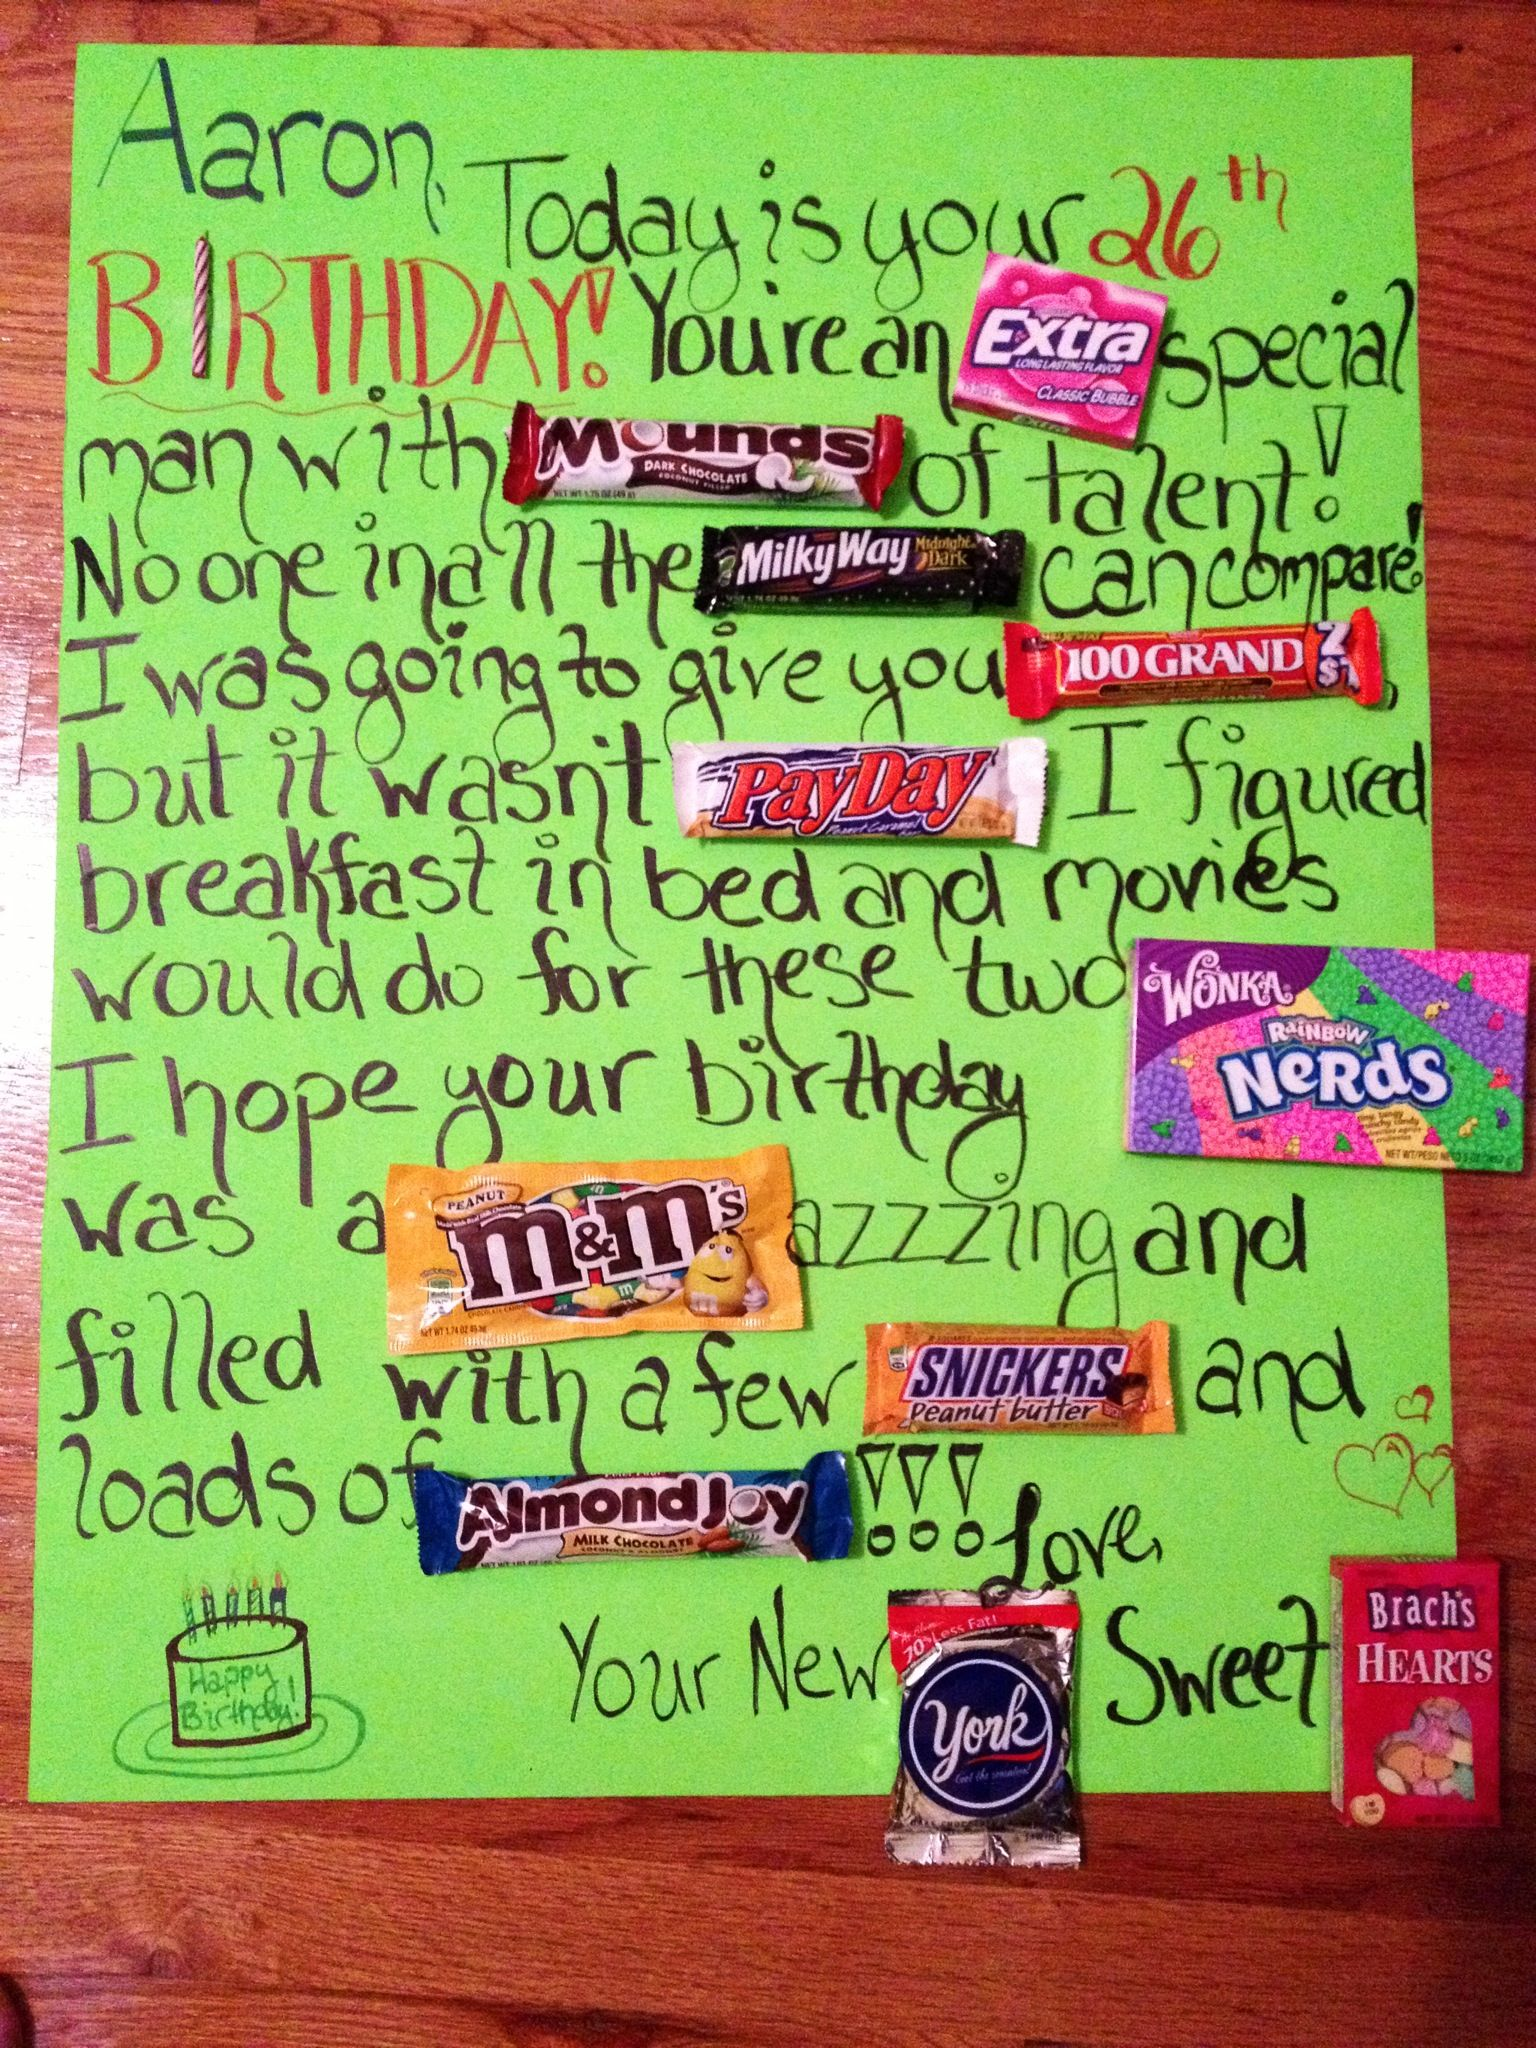 Candy Bar Poster Ideas with Clever Sayings | Best Candy bar ...